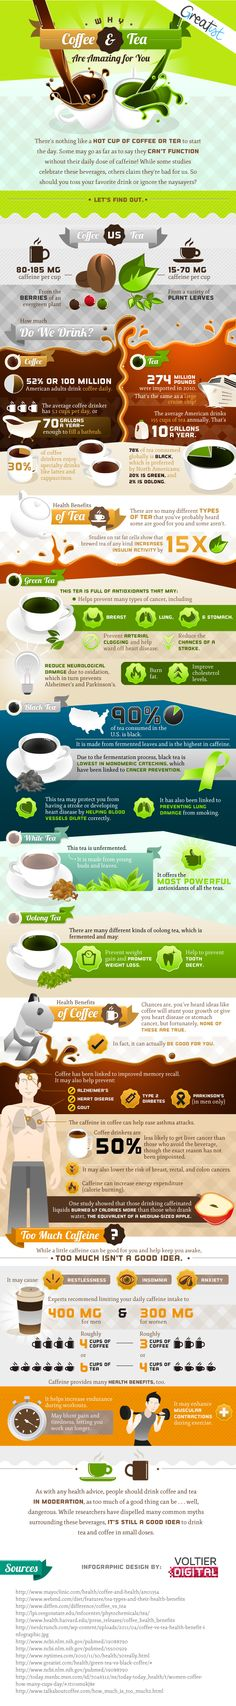 fun facts: coffee and tea